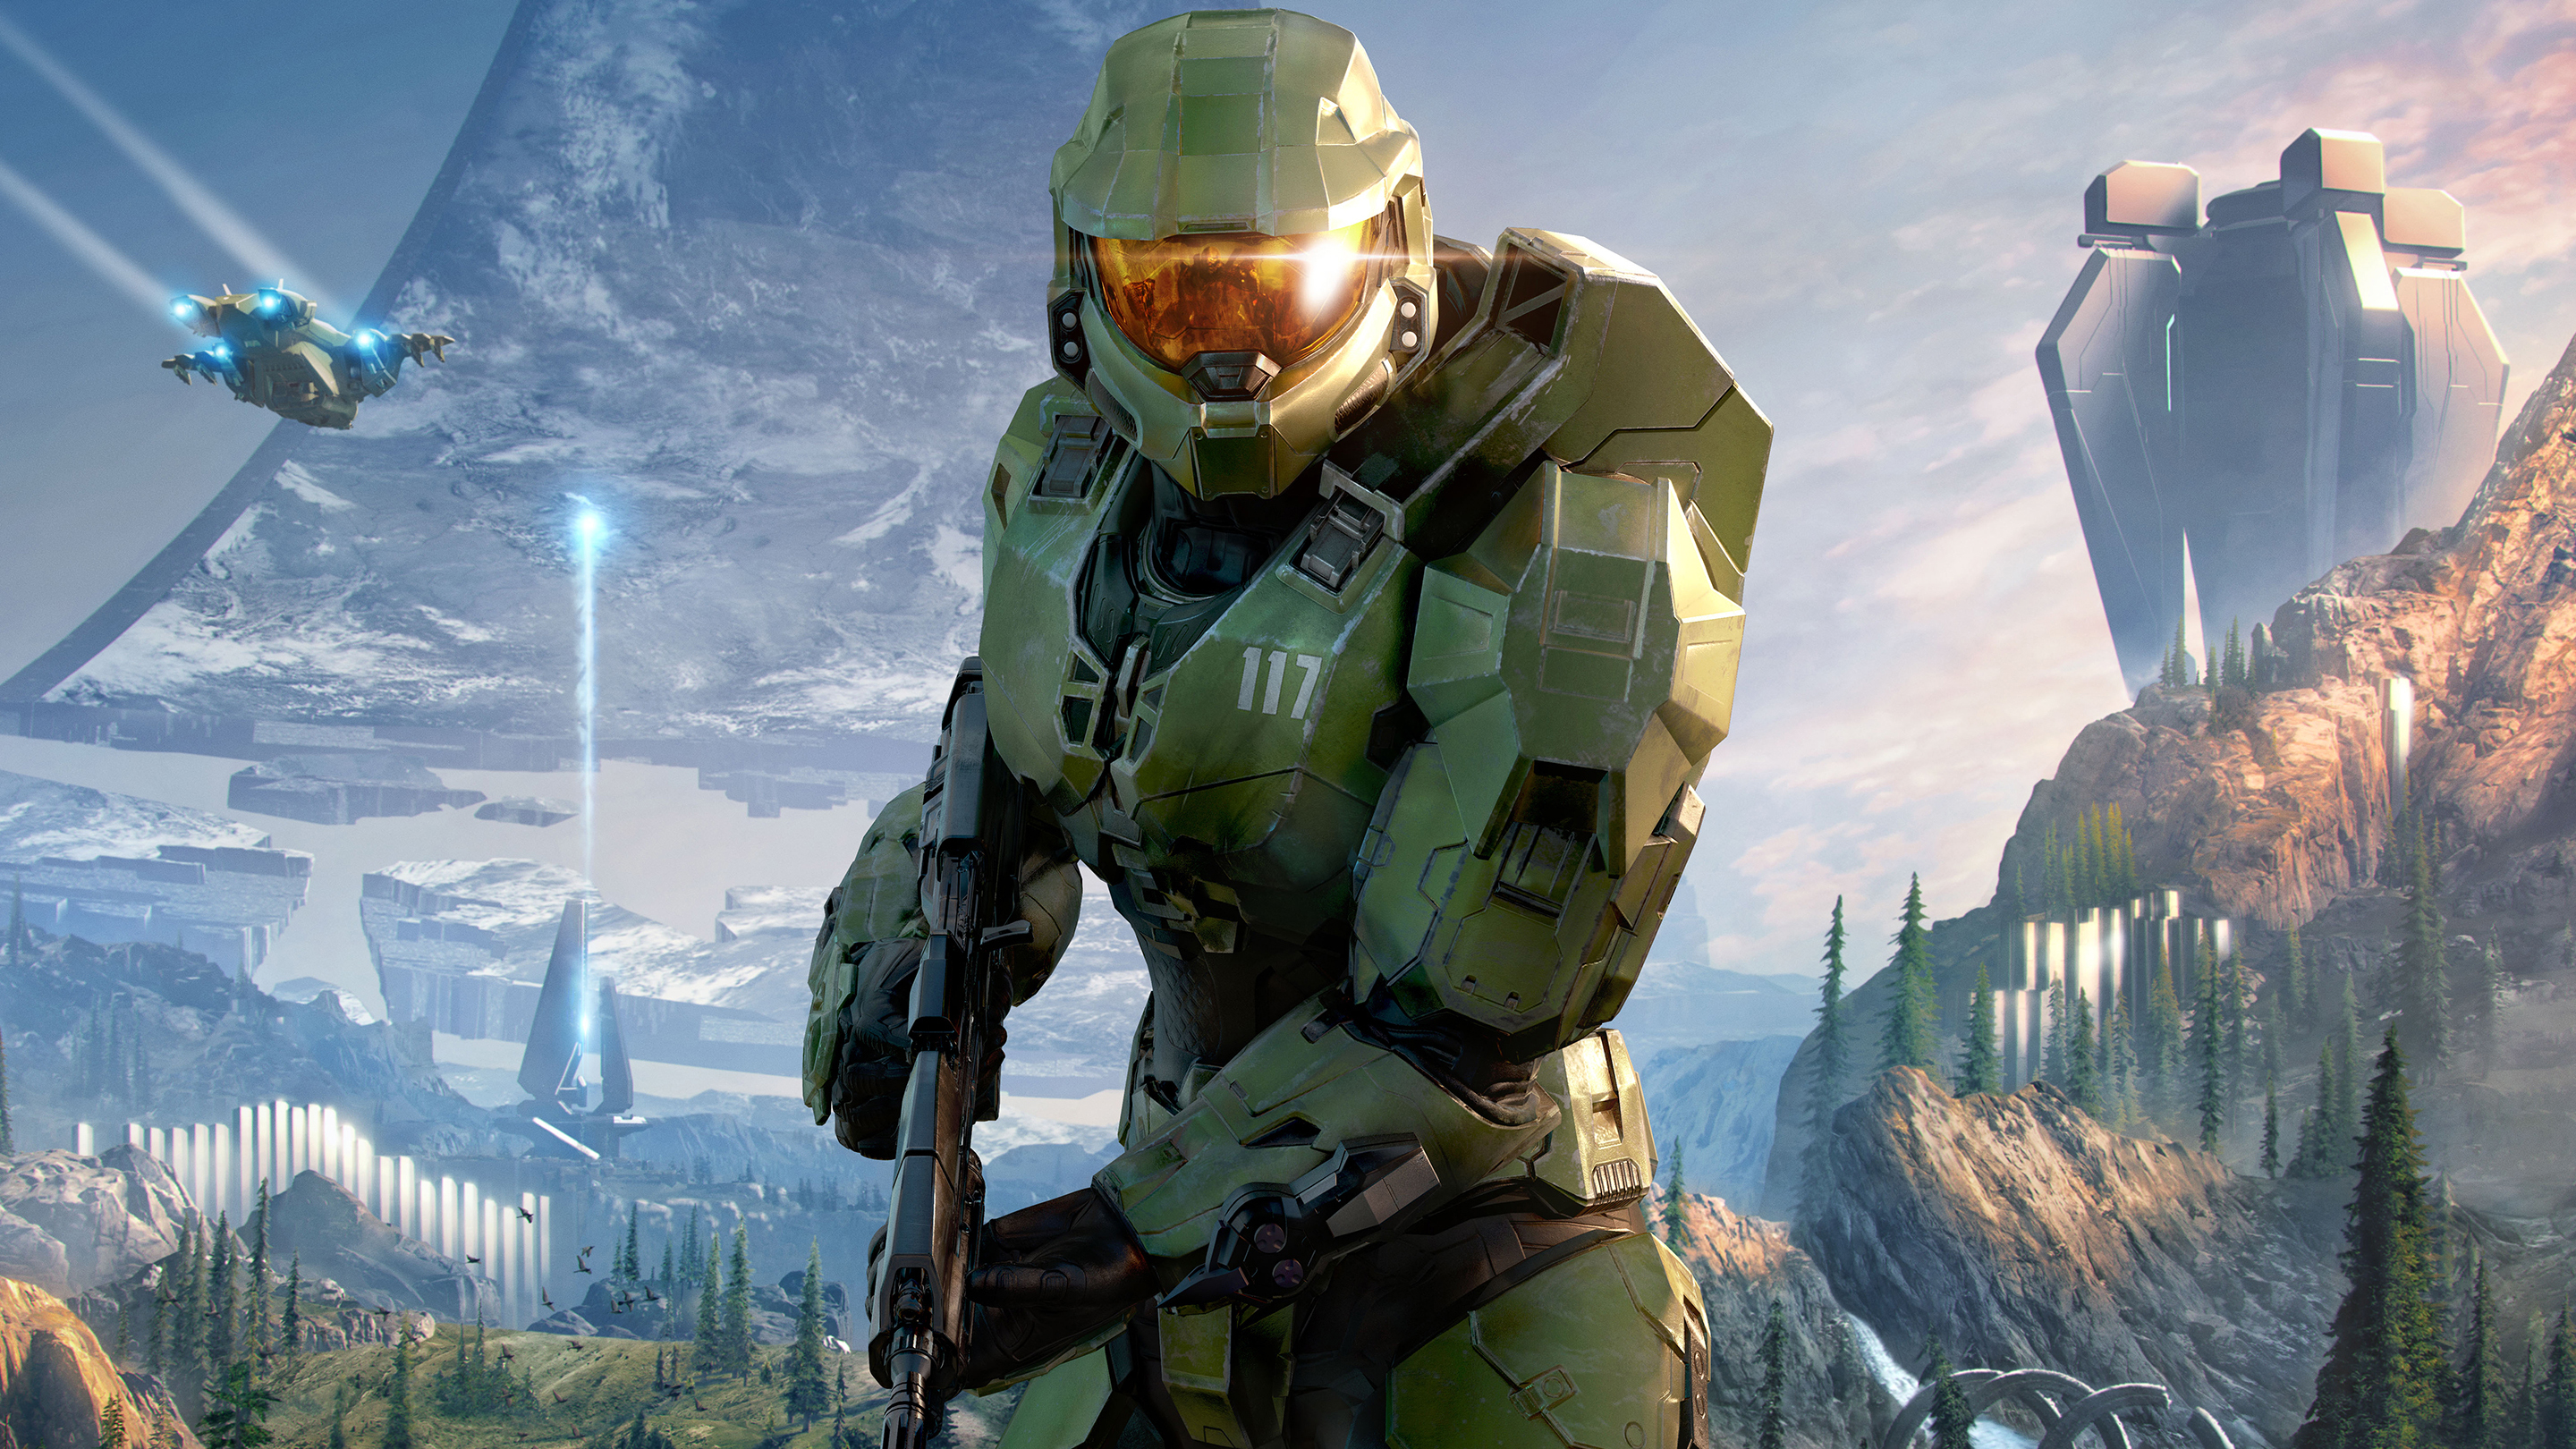 Xbox Series X Halo Infinite Fable 4 And Forza Detailed During Microsoft Event Fortune